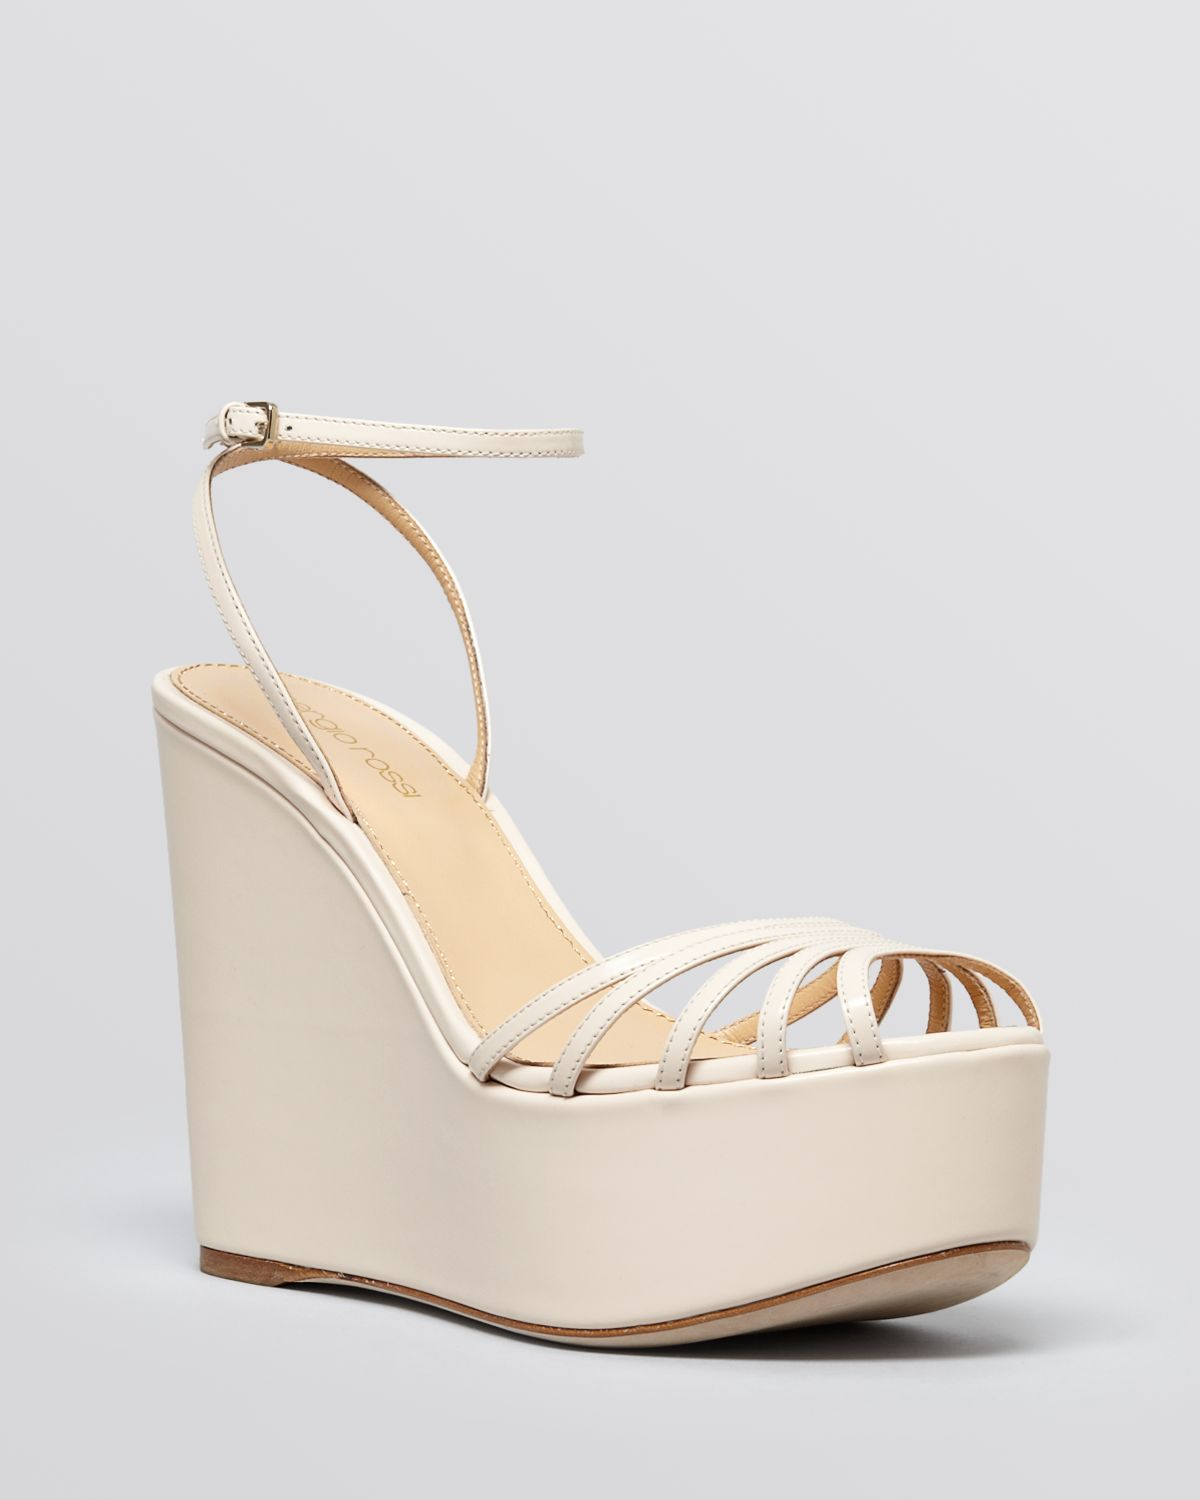 clearance online official site shop online Sergio Rossi Leather Peep-Toe Wedges comfortable cheap online Nn9Lg